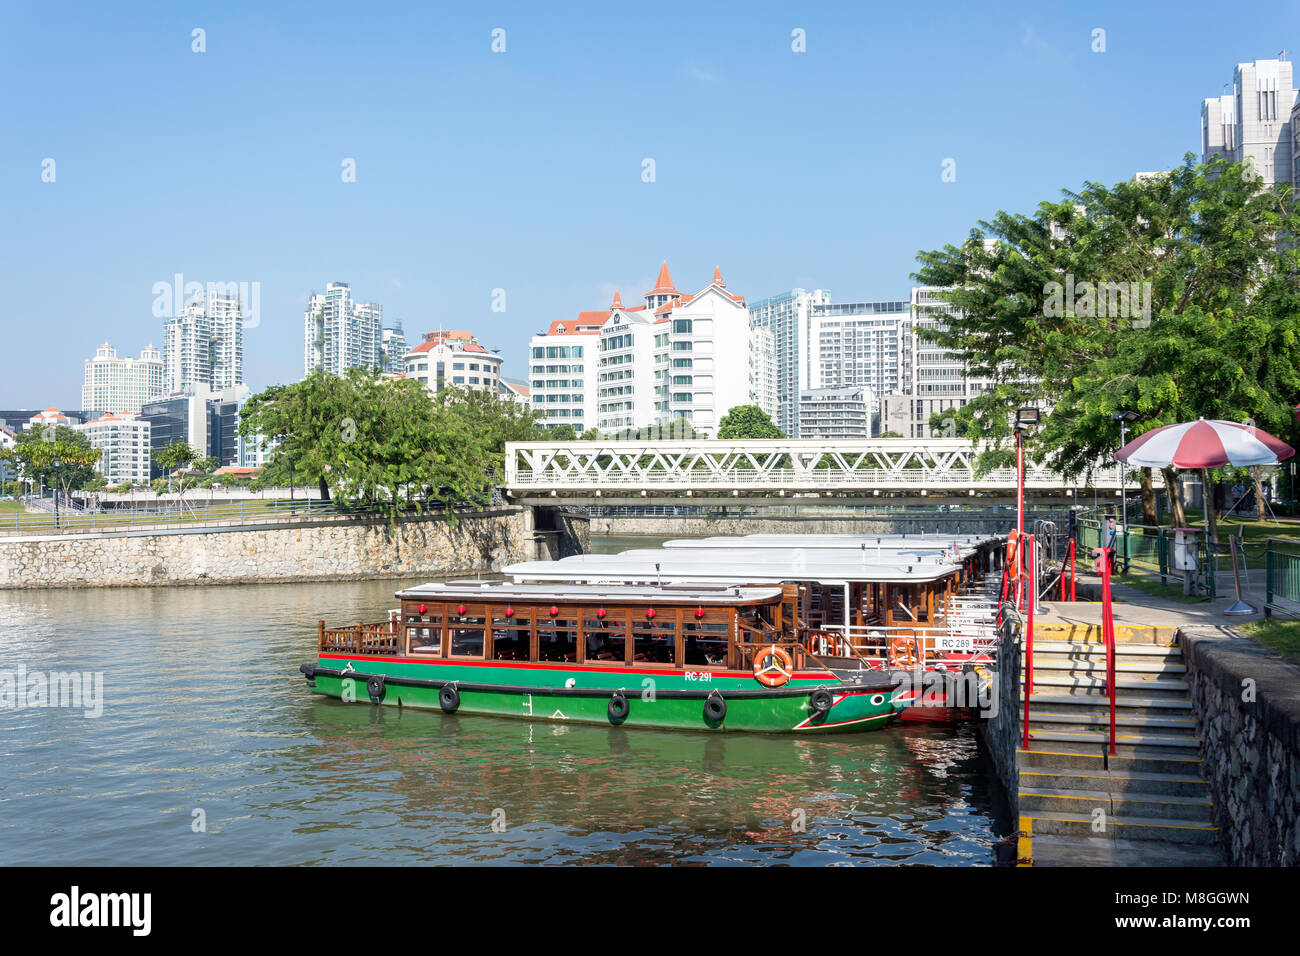 River taxis moored at Clarke Quay, Civic District, Singapore Island (Pulau Ujong), Singapore - Stock Image